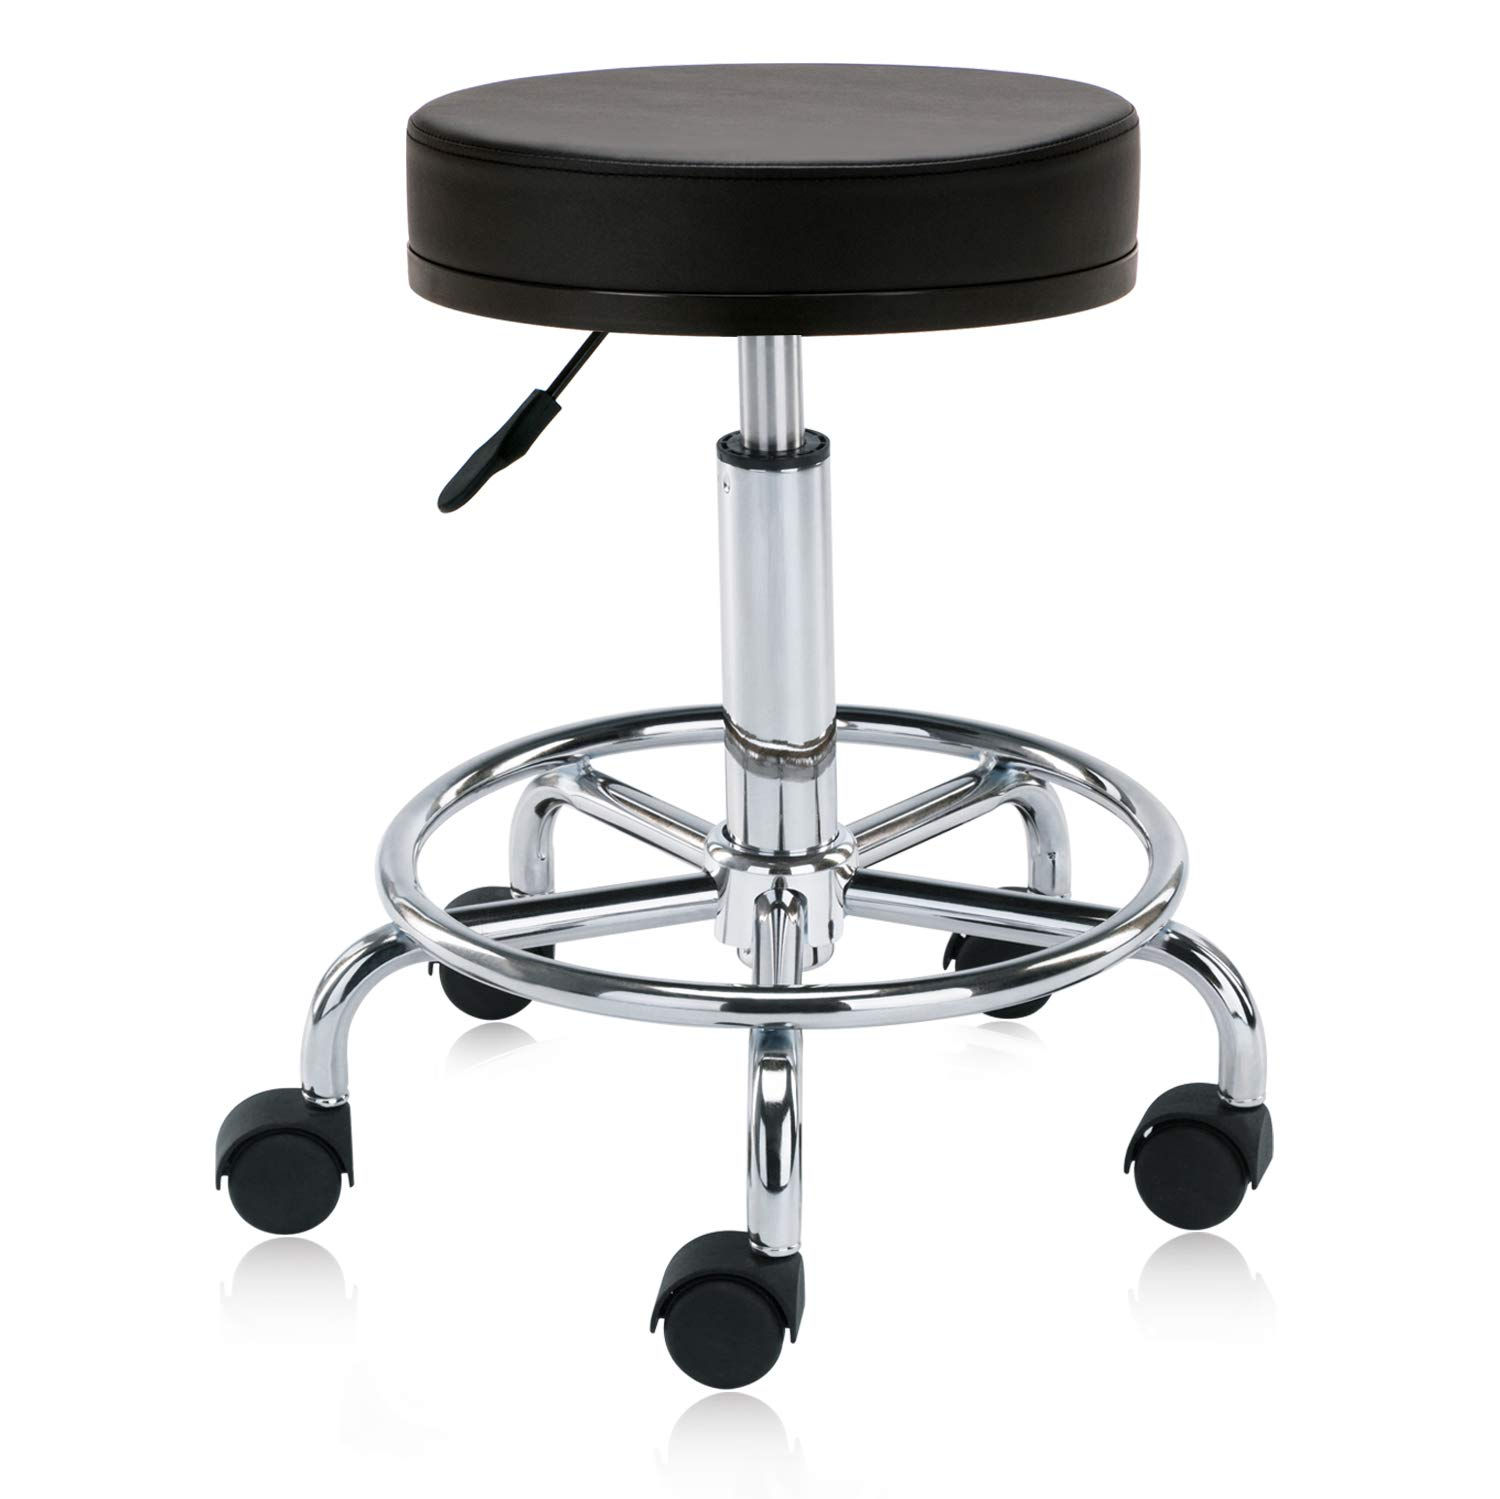 DR.LOMILOMI Swivel Rolling Hydraulic Height Adjustable Stool Chair 504 with Foot Rest for Clinic Spas Beauty Salons Dentists Home Office (with Wheels, Black) by DR.LOMILOMI